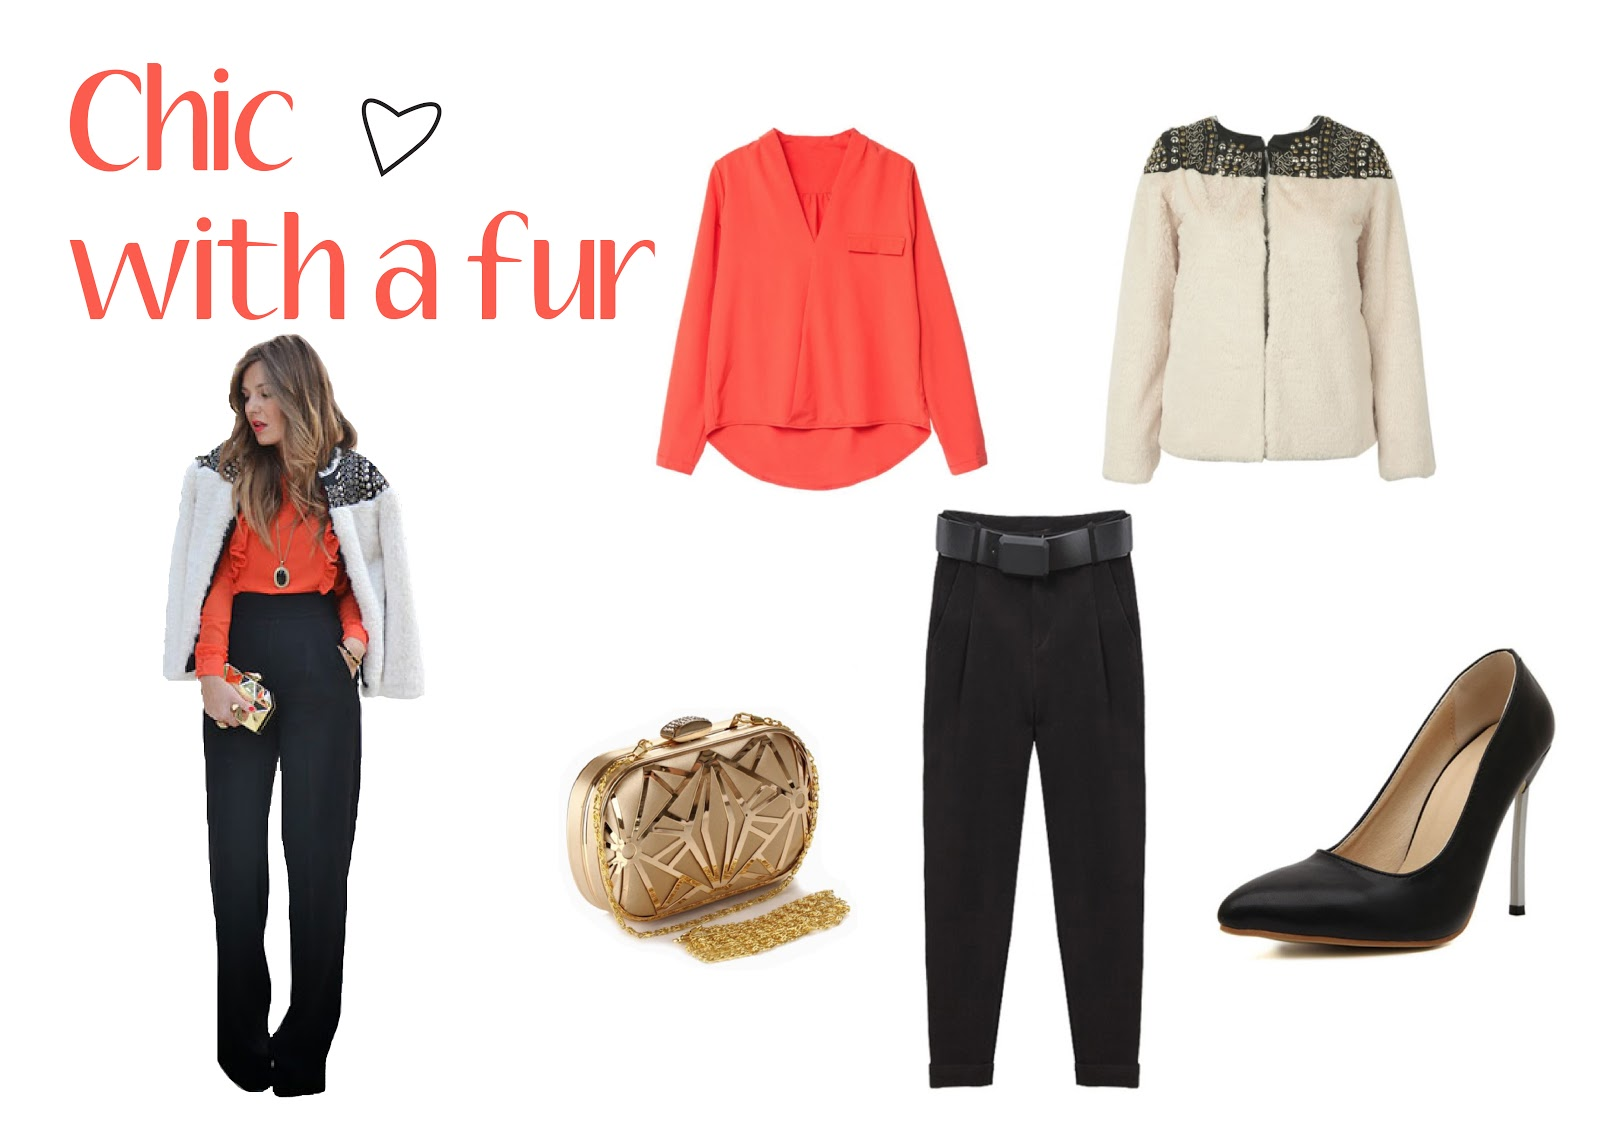 fashion blogger style look outfit trend marsala choices winter wishlist autunno inverno 2016 coat leather orange fur pelliccia